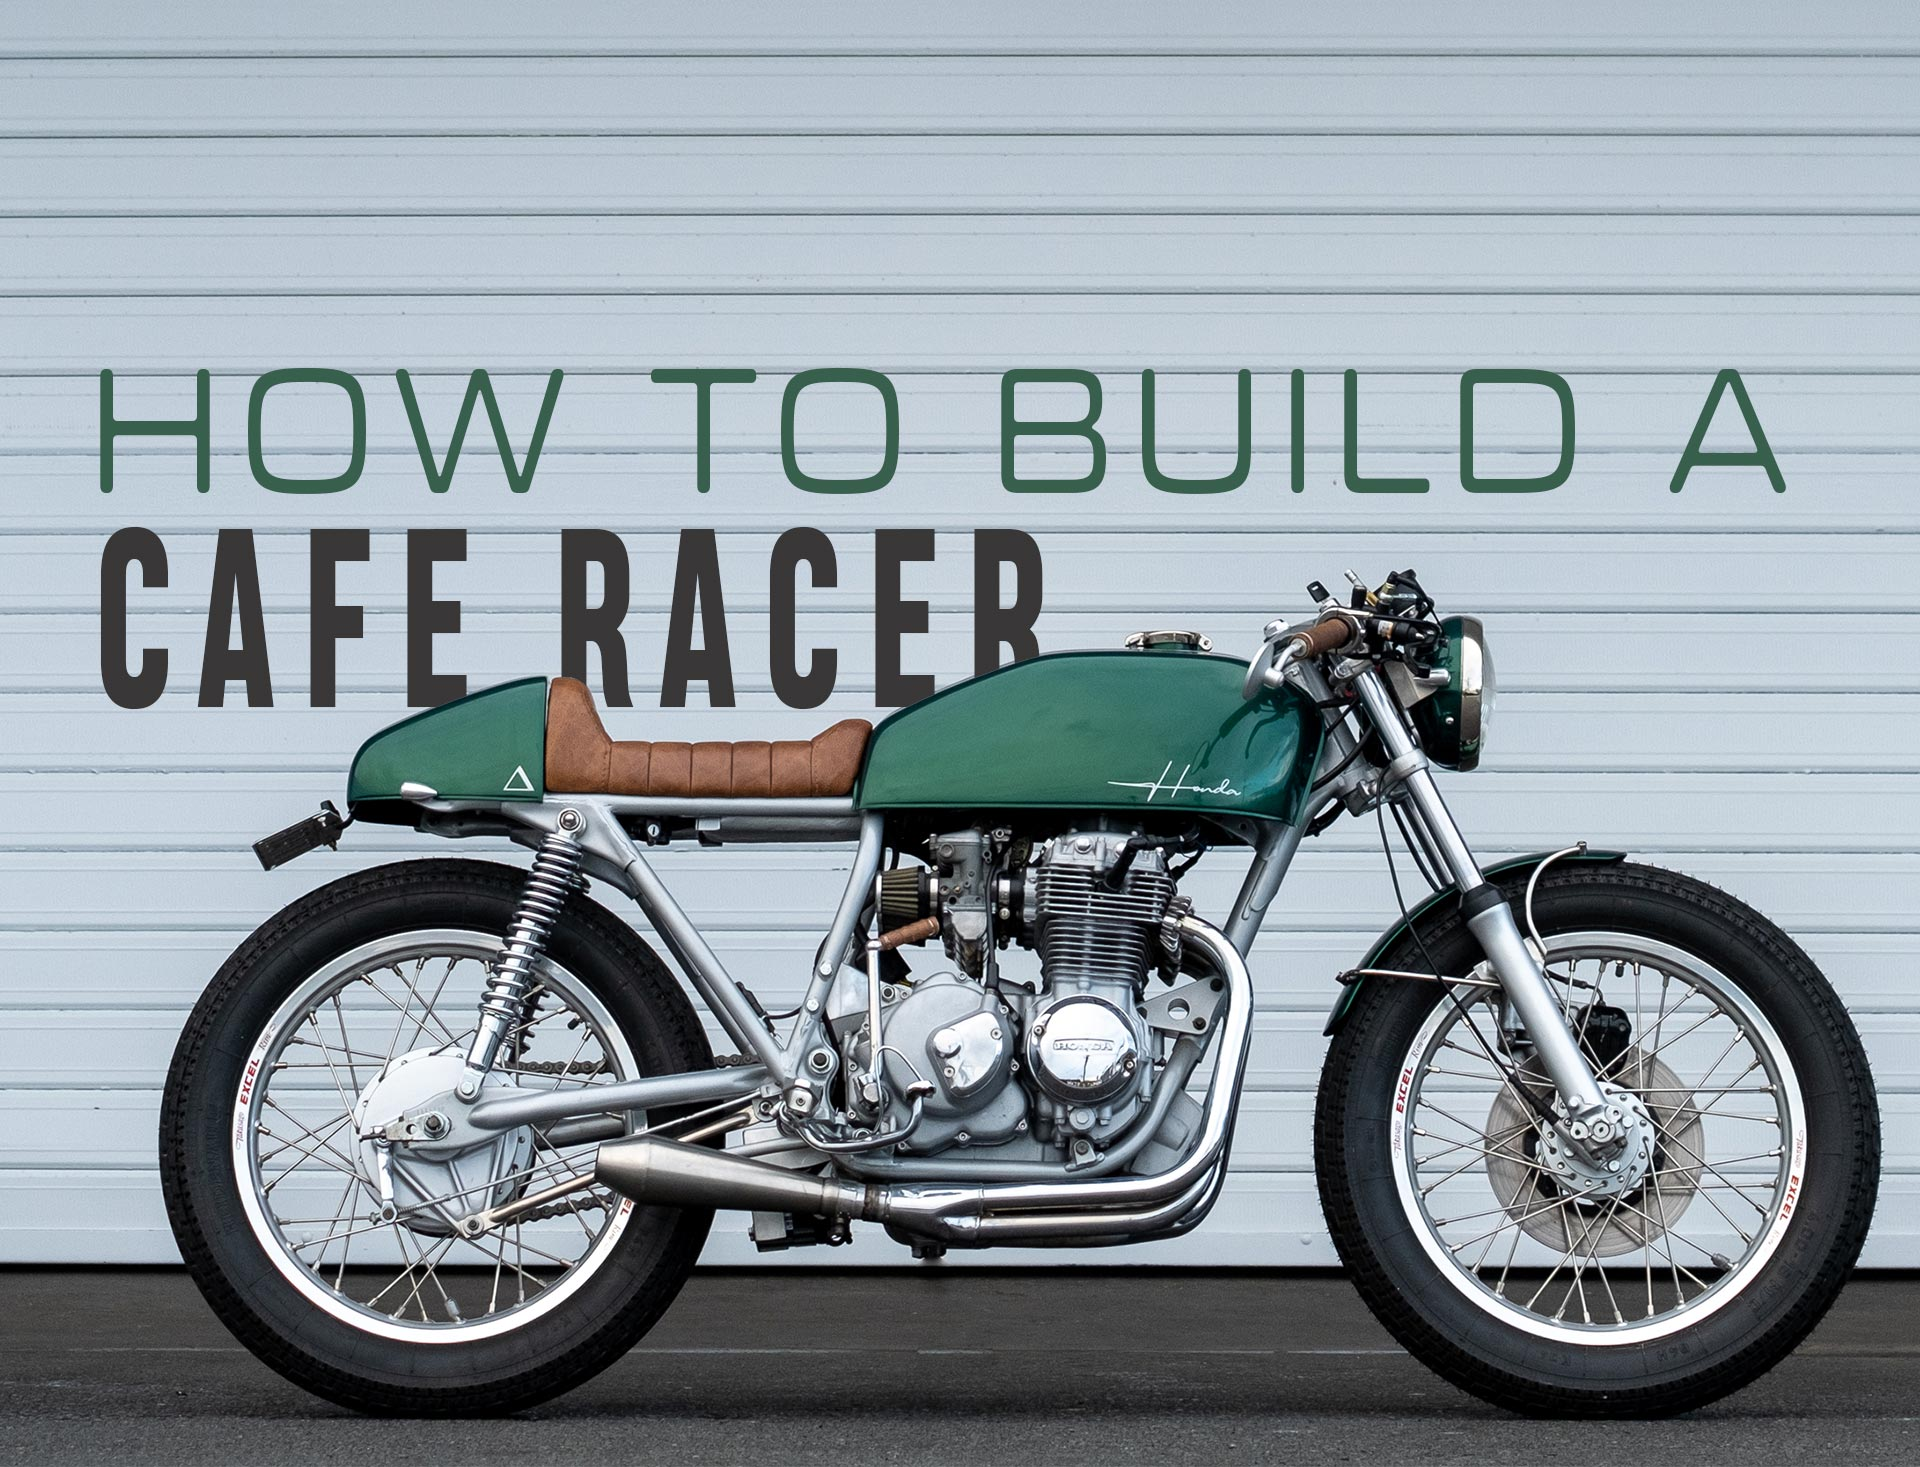 How to build a cafe racer motorcycle